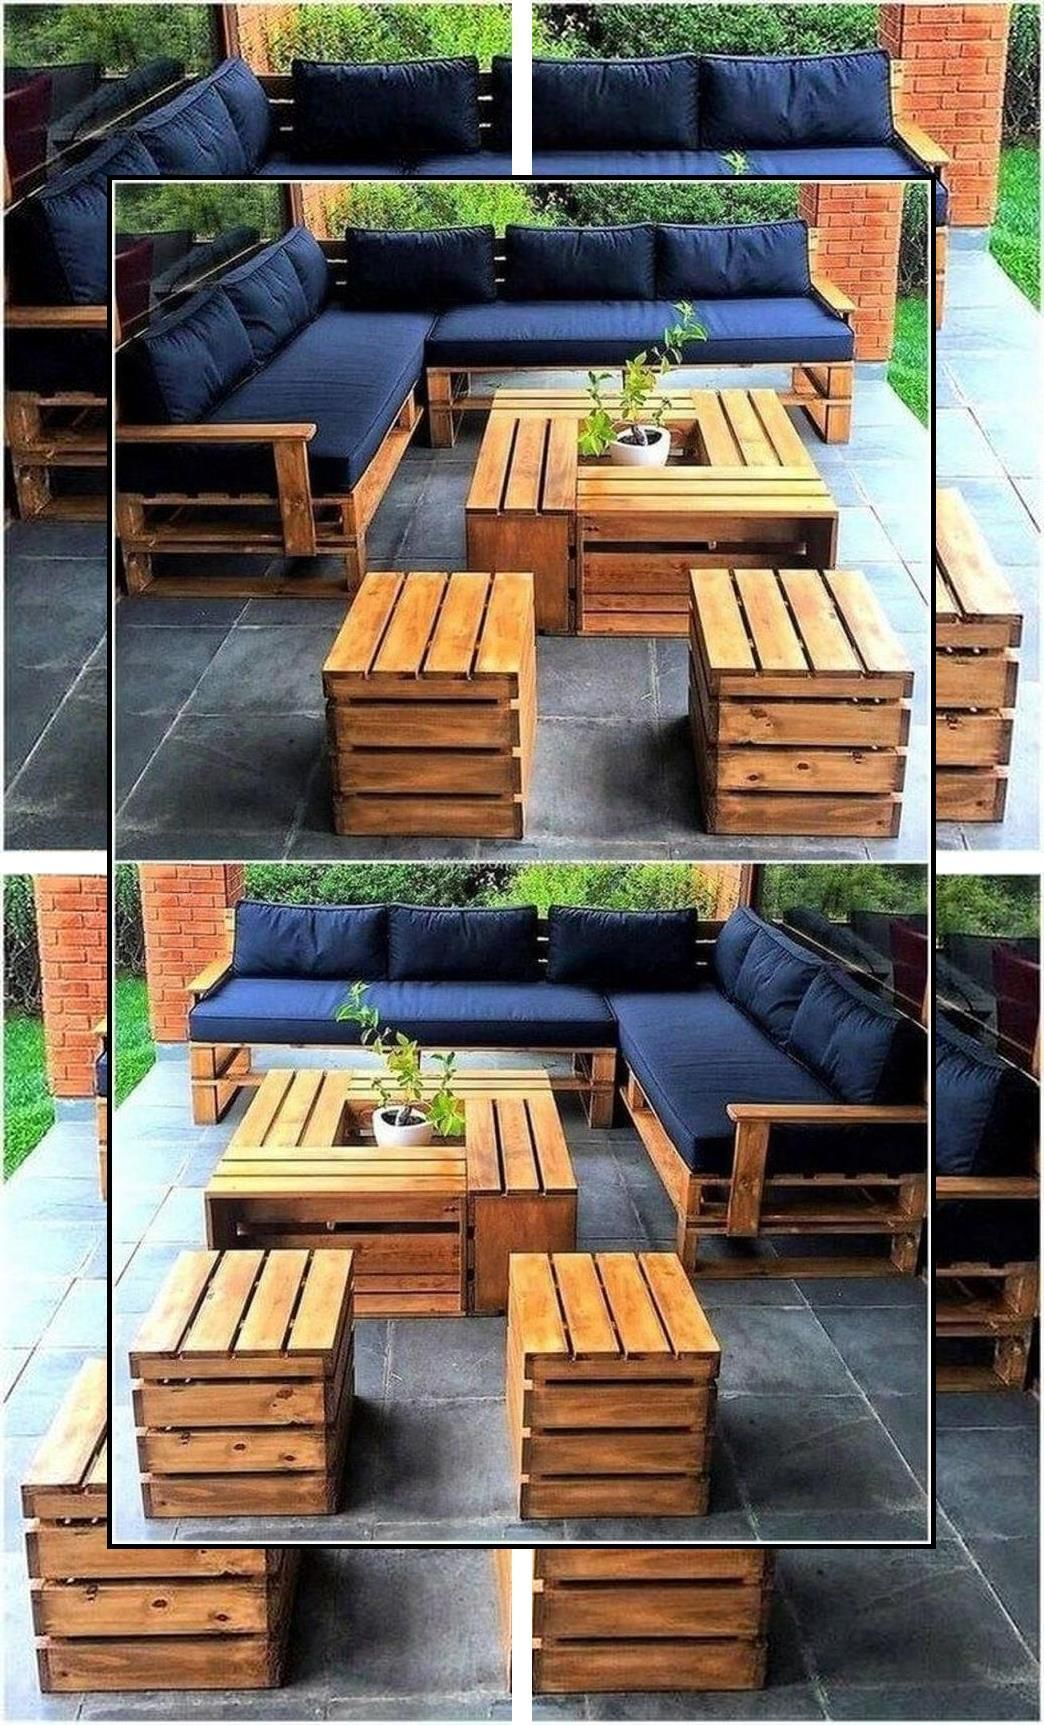 Lawn Furniture Made From Pallets Crate And Pallet Furniture How To Make Pallet Furn In 2020 Pallet Patio Furniture Pallet Garden Furniture Pallet Furniture Outdoor